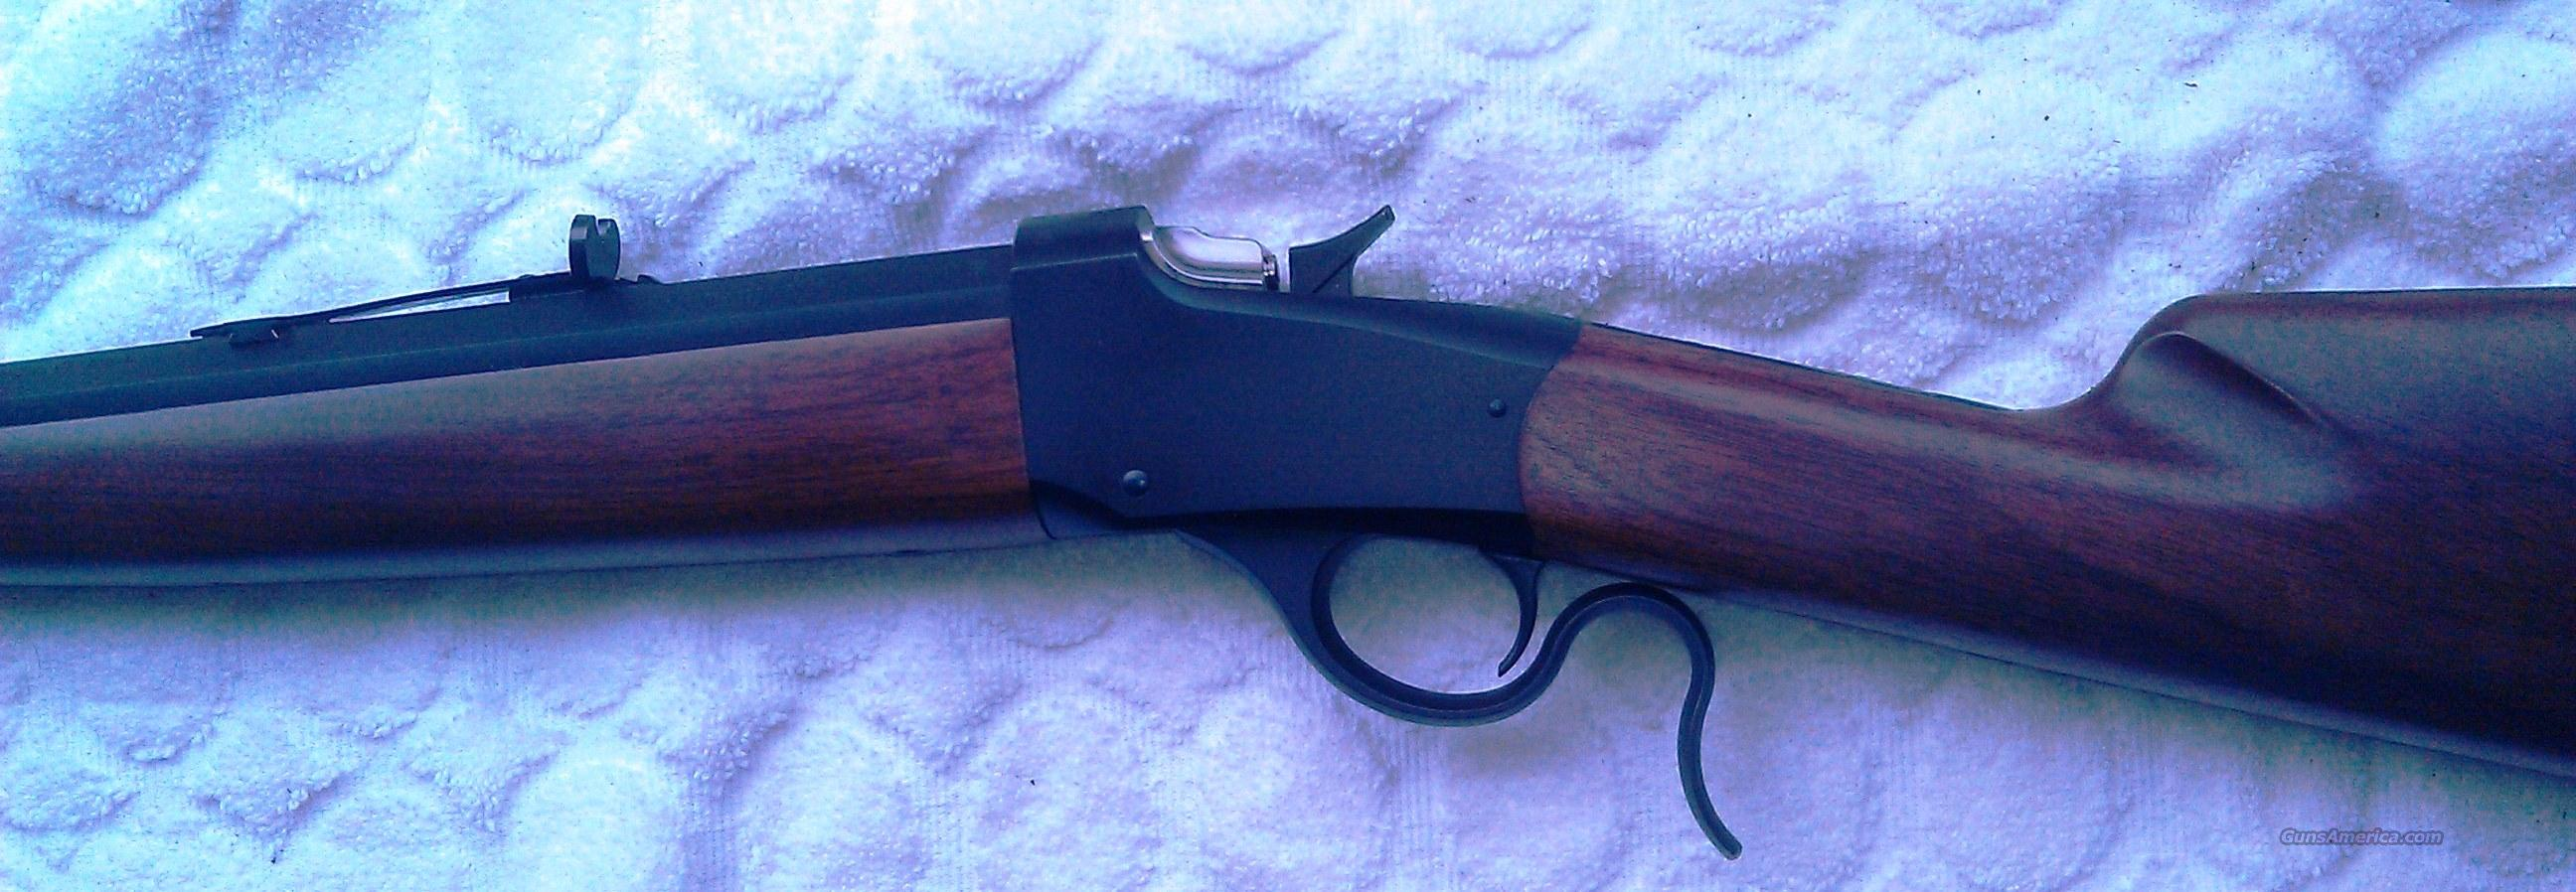 Winchester Low-wall 3/4 Octagon, round barrel Rifle .22LR UNFIRED!  Guns > Rifles > Winchester Replica Rifle Misc.